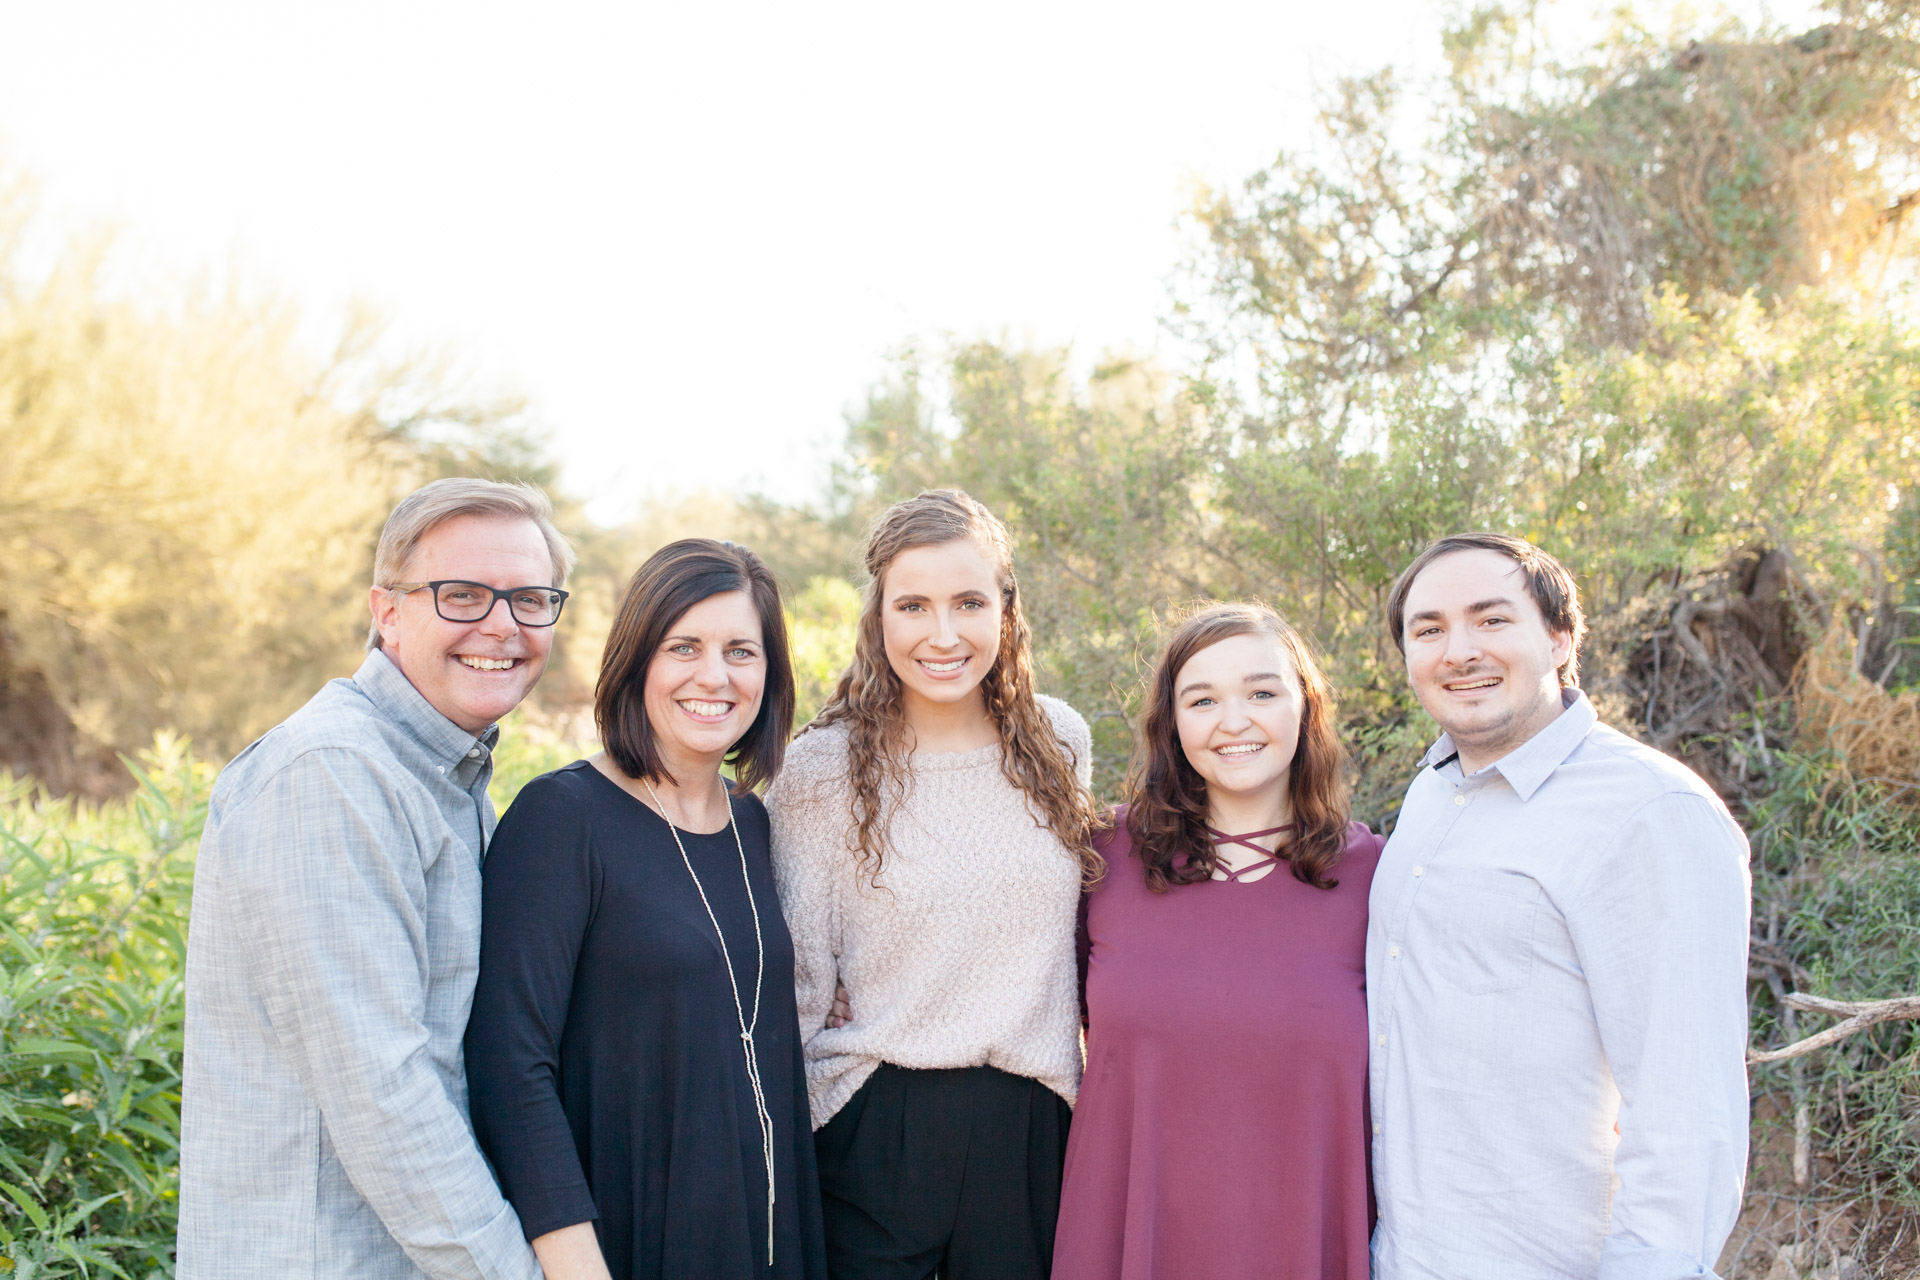 Erica is a true professional with family photography. She lead our family to a beautiful setting, facilitated a relaxed composure and provided her technical expertise to capture the moment. We always use Erica for our family photos.